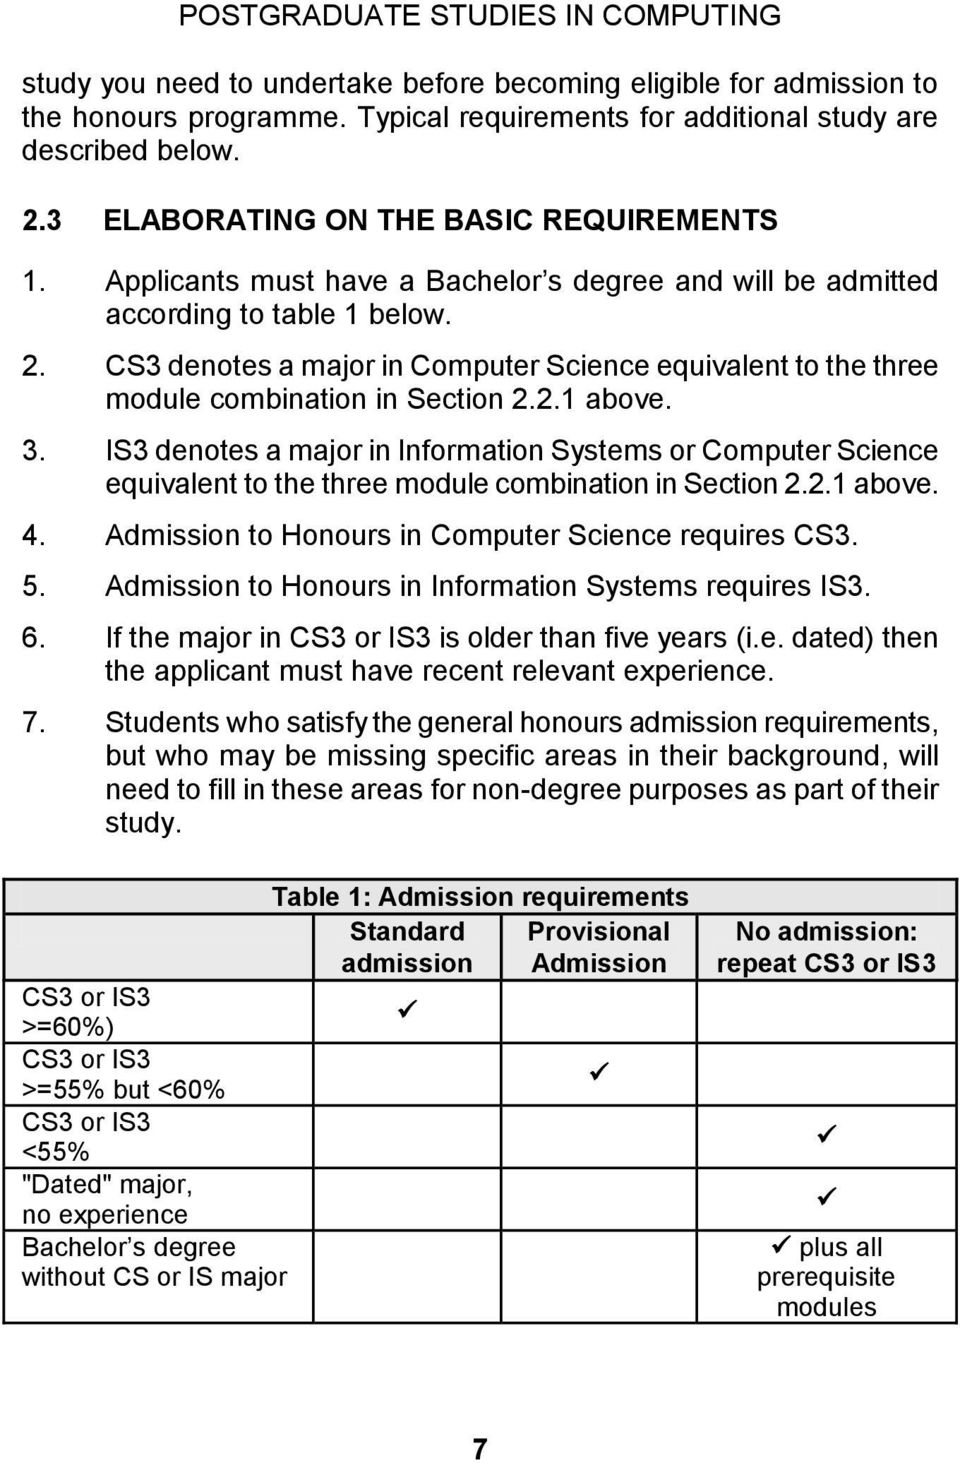 3. IS3 denotes a major in Information Systems or Computer Science equivalent to the three module combination in Section 2.2.1 above. 4. Admission to Honours in Computer Science requires CS3. 5.